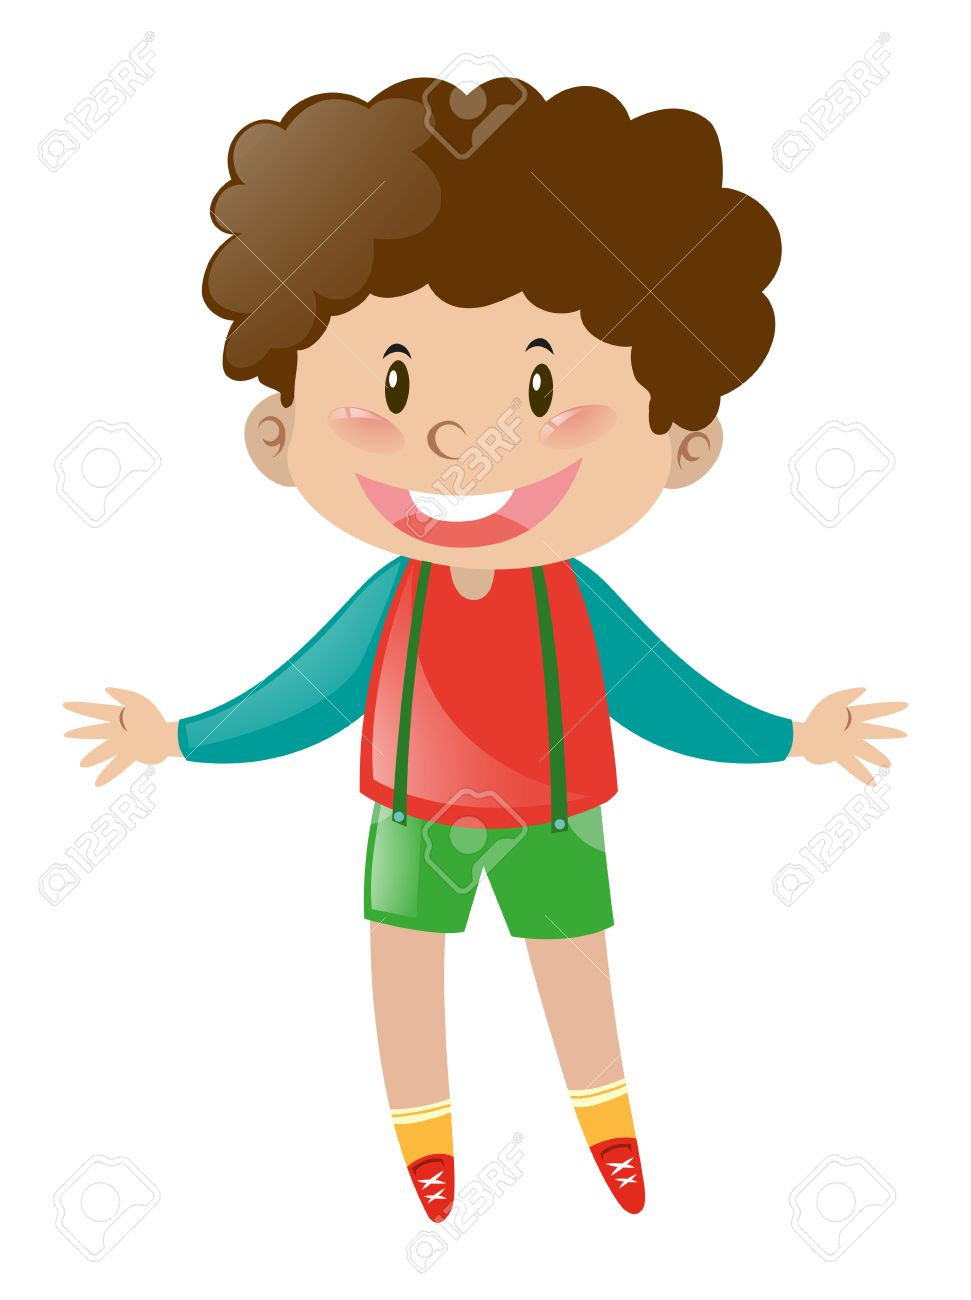 Little boy with brown curly hair illustration.